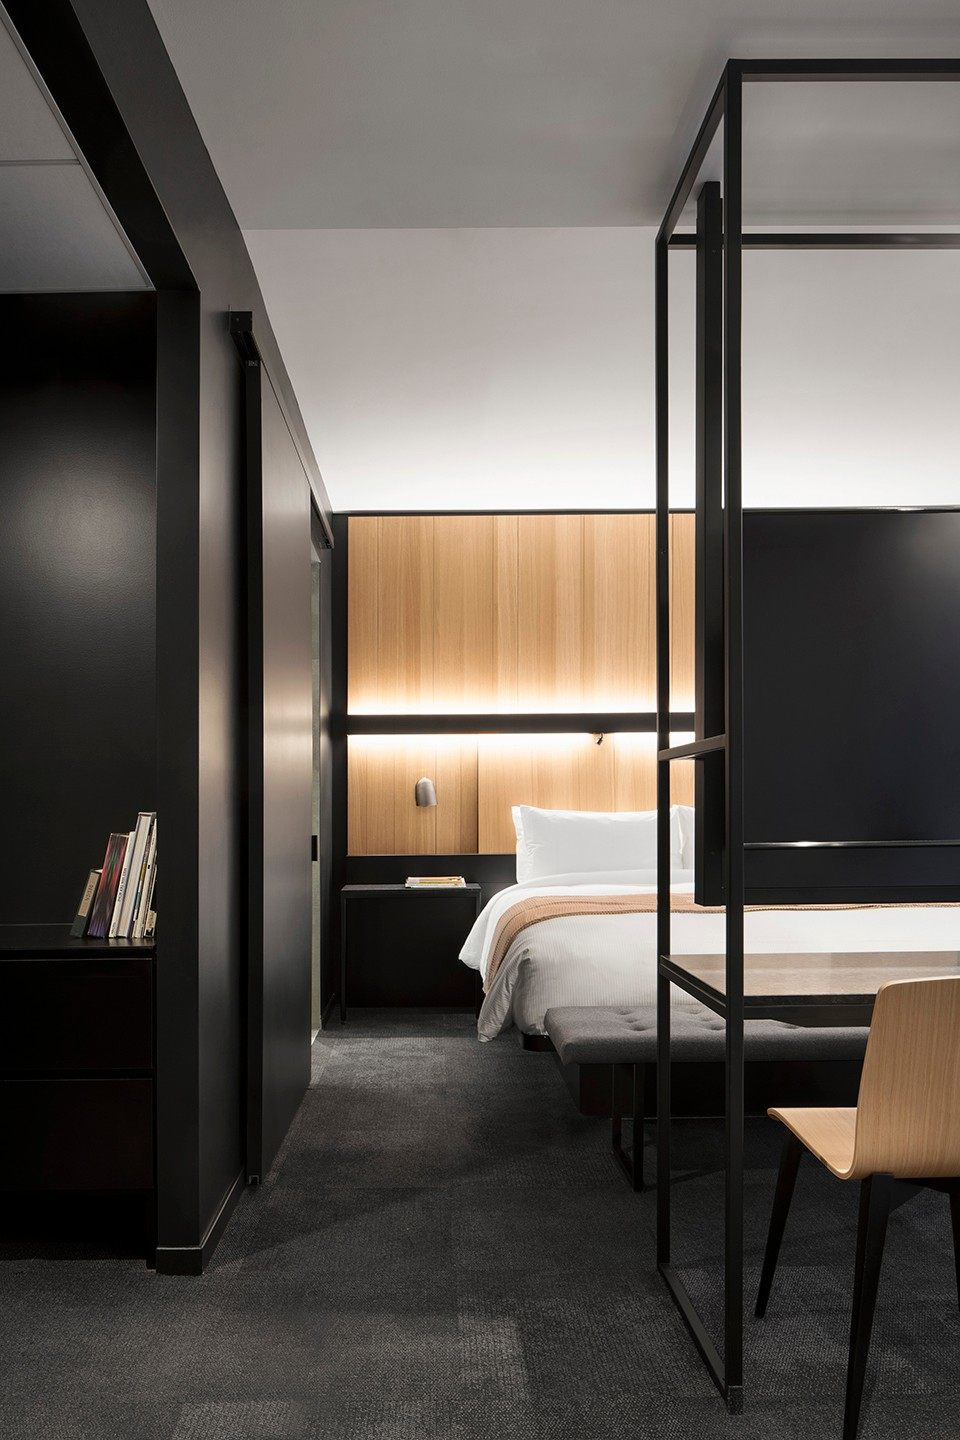 009-hotel-monville-by-acdf-architecture.jpg